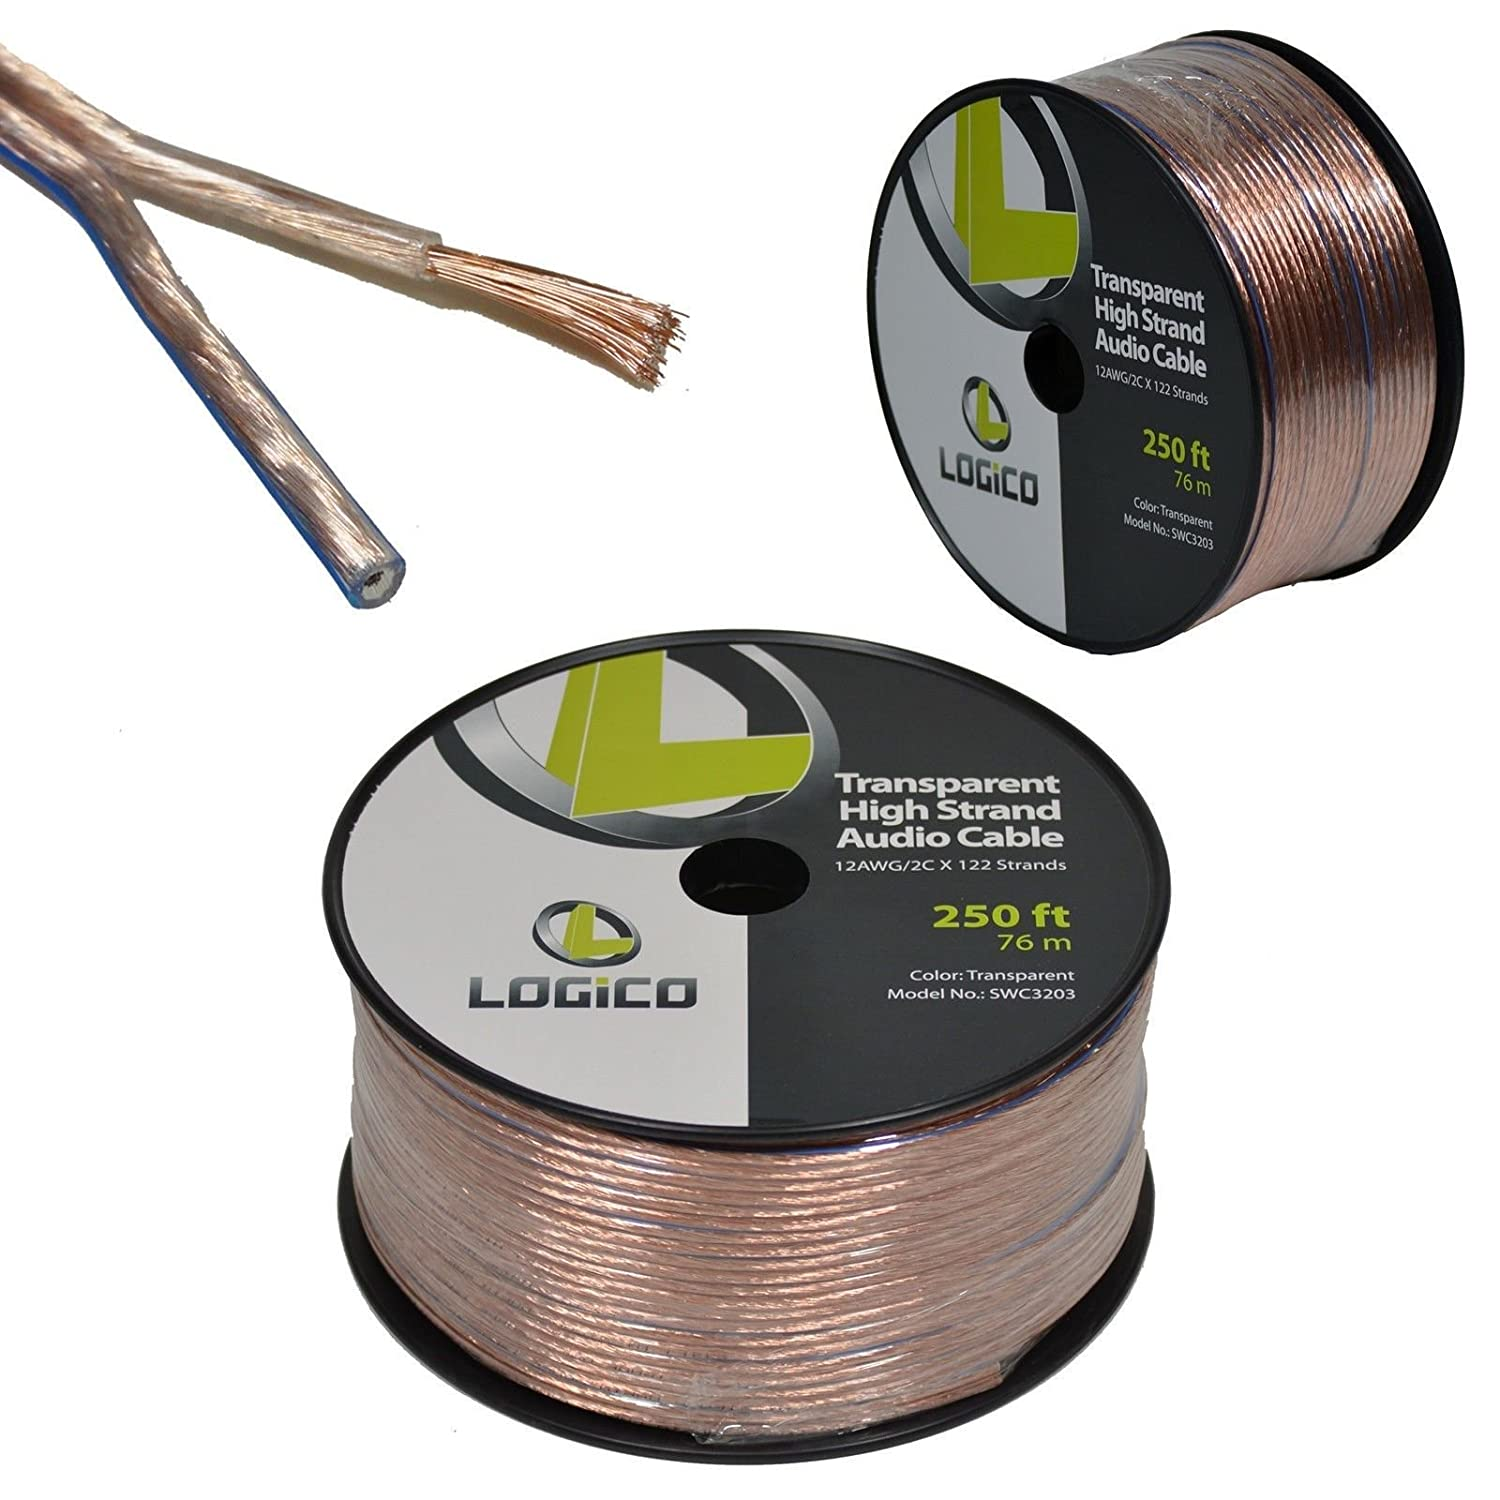 Amazon.com: 12/2 250FT 12AWG GAUGE 2 CONDUCTOR TRANSPARENT HIGH ...